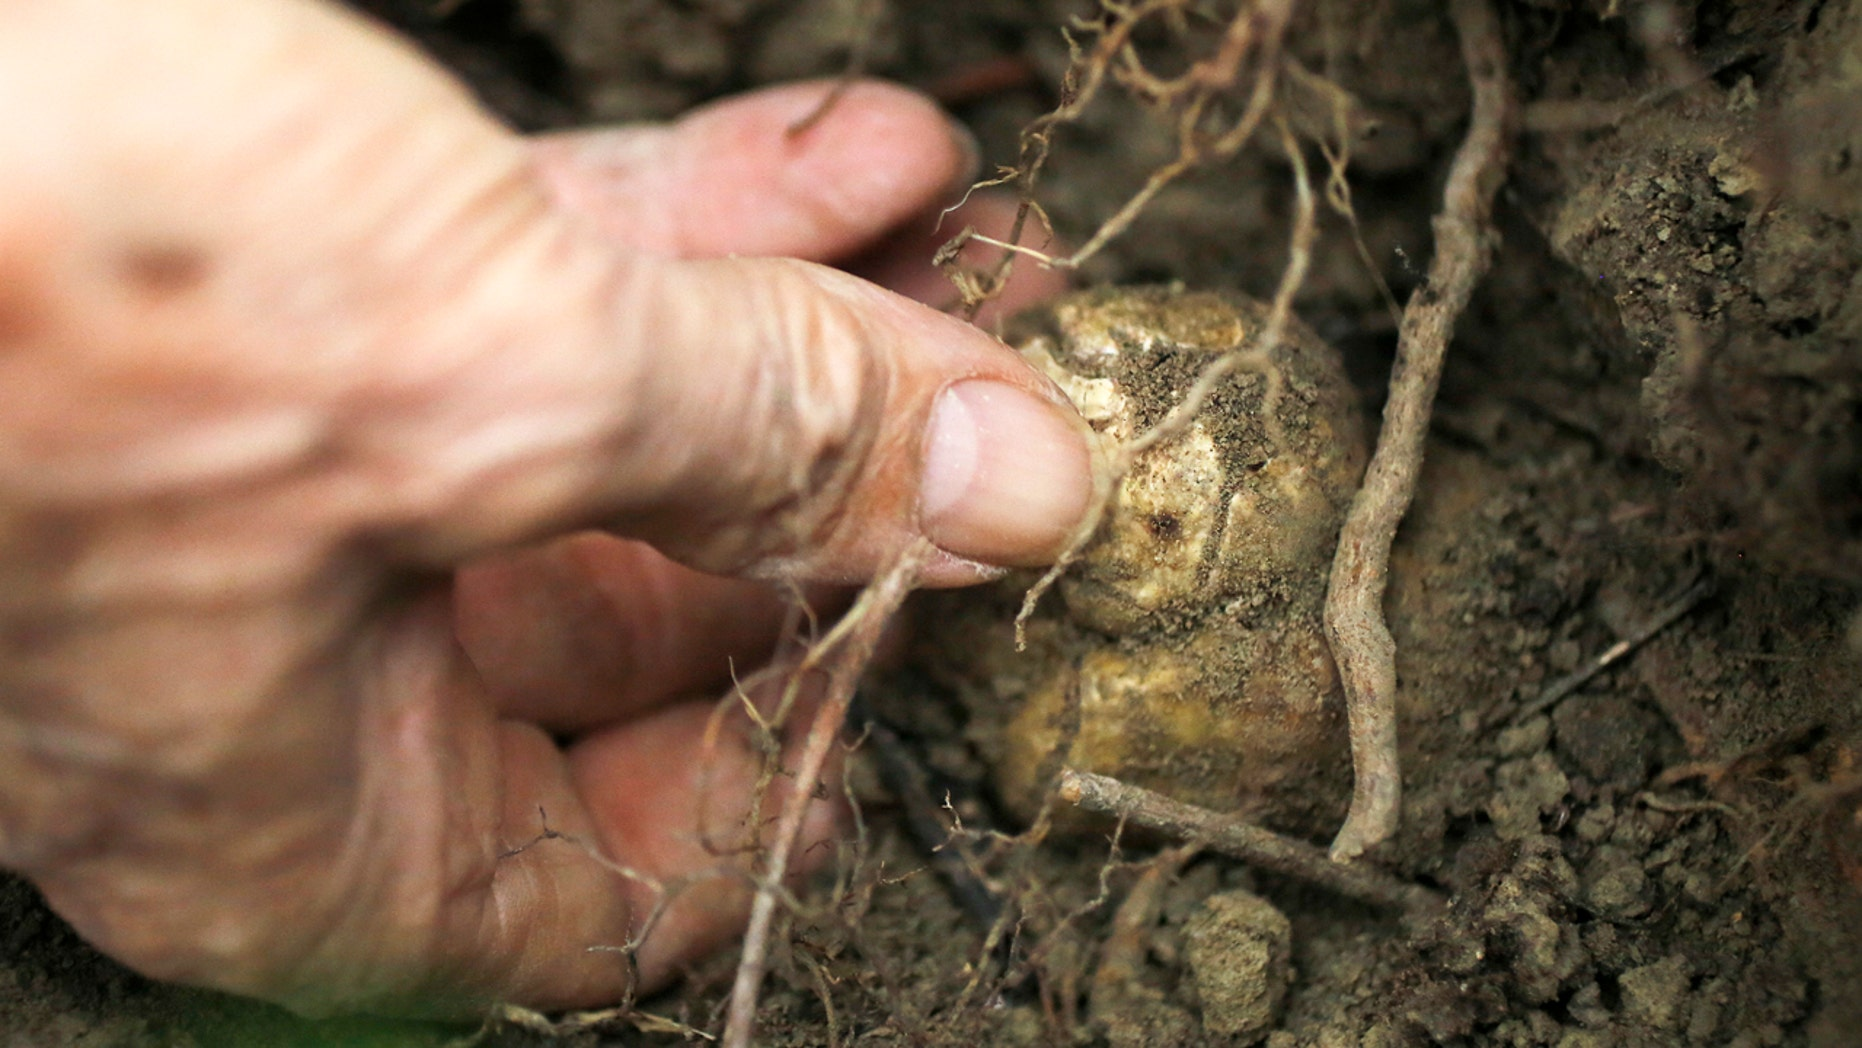 Truffle hunting near Alba in northwestern Italy. Located in the heart of the Langhe - the hilly southern area of Italy's northwestern Piedmont region - Alba is the country's capital of white truffles, a variety of the prized fungus which grows underground.